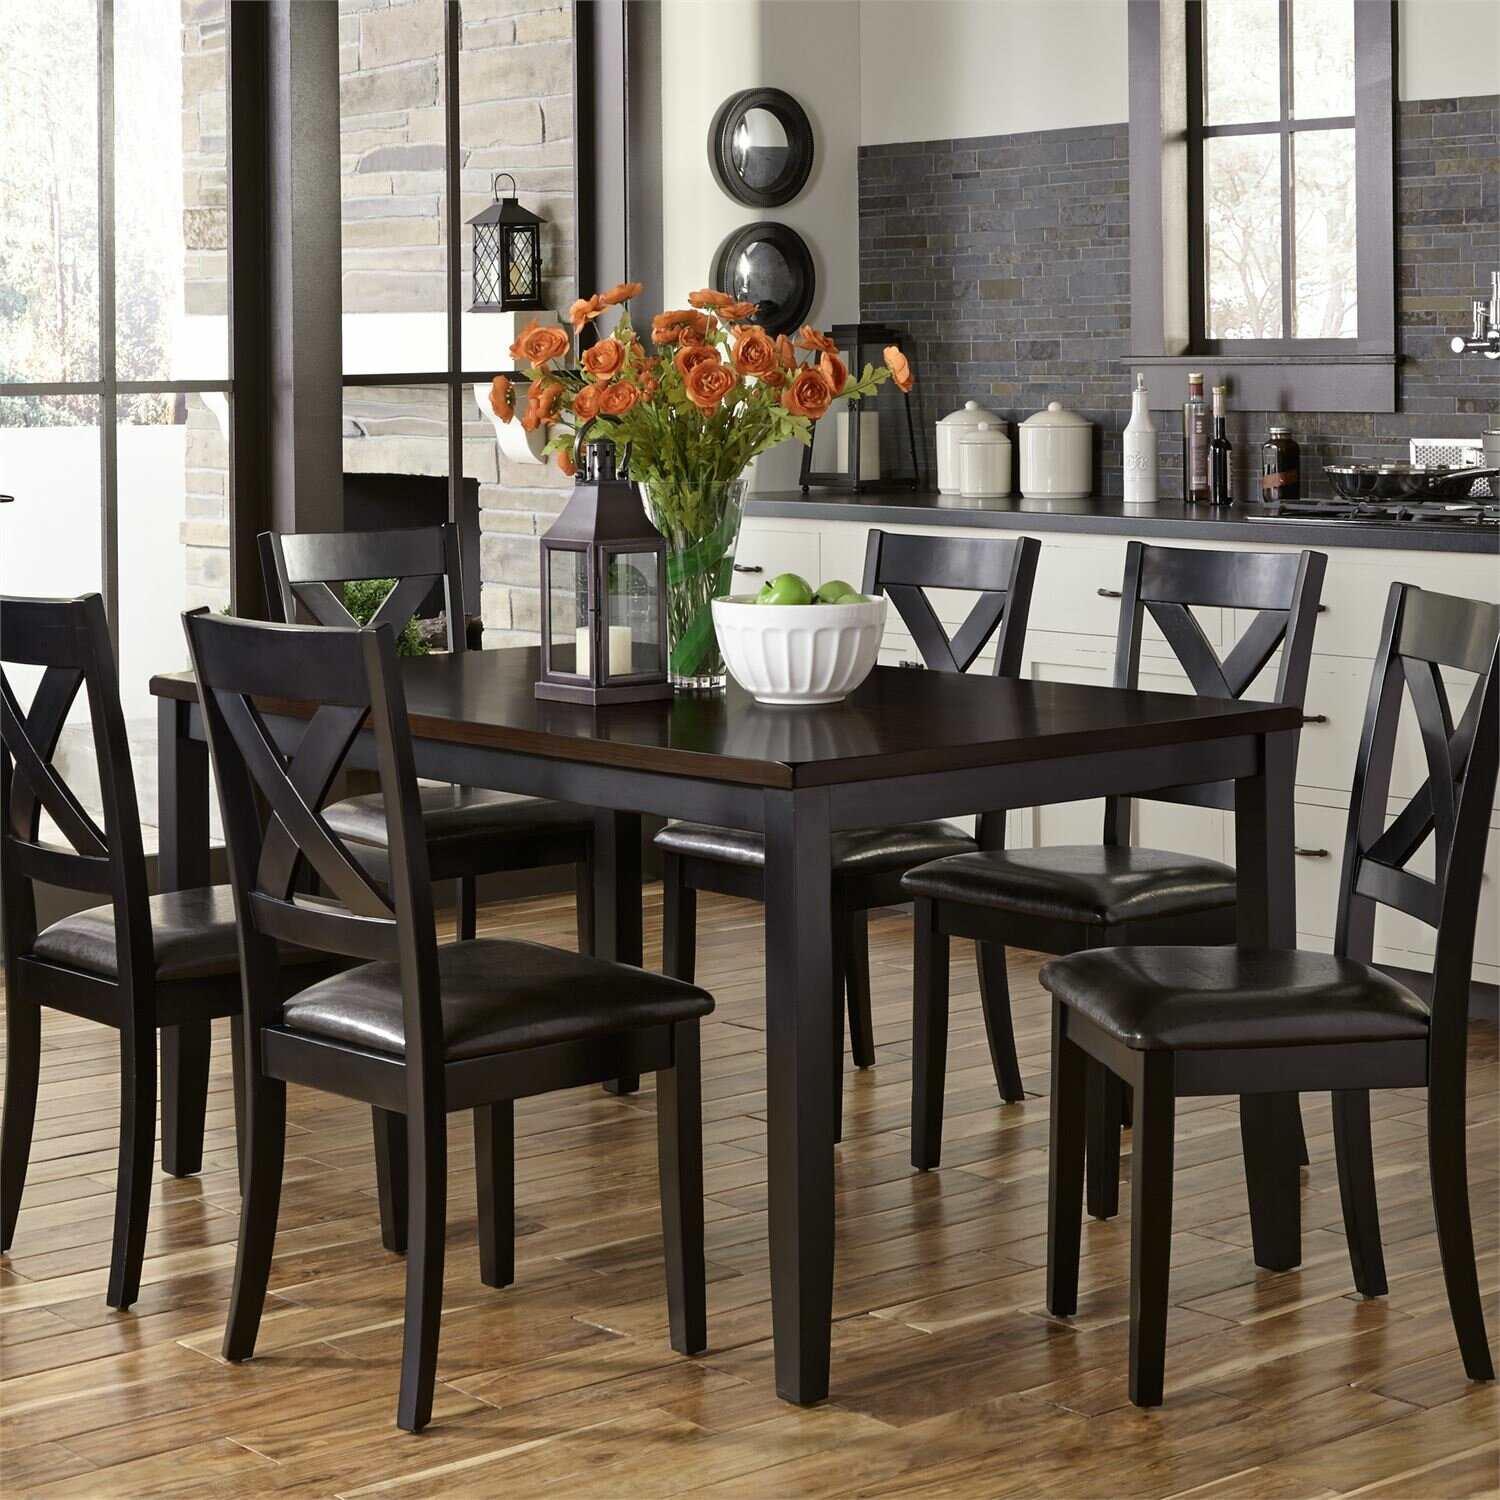 Black Kitchen & Dining Room Sets You'll Love in 2021 | Wayfair